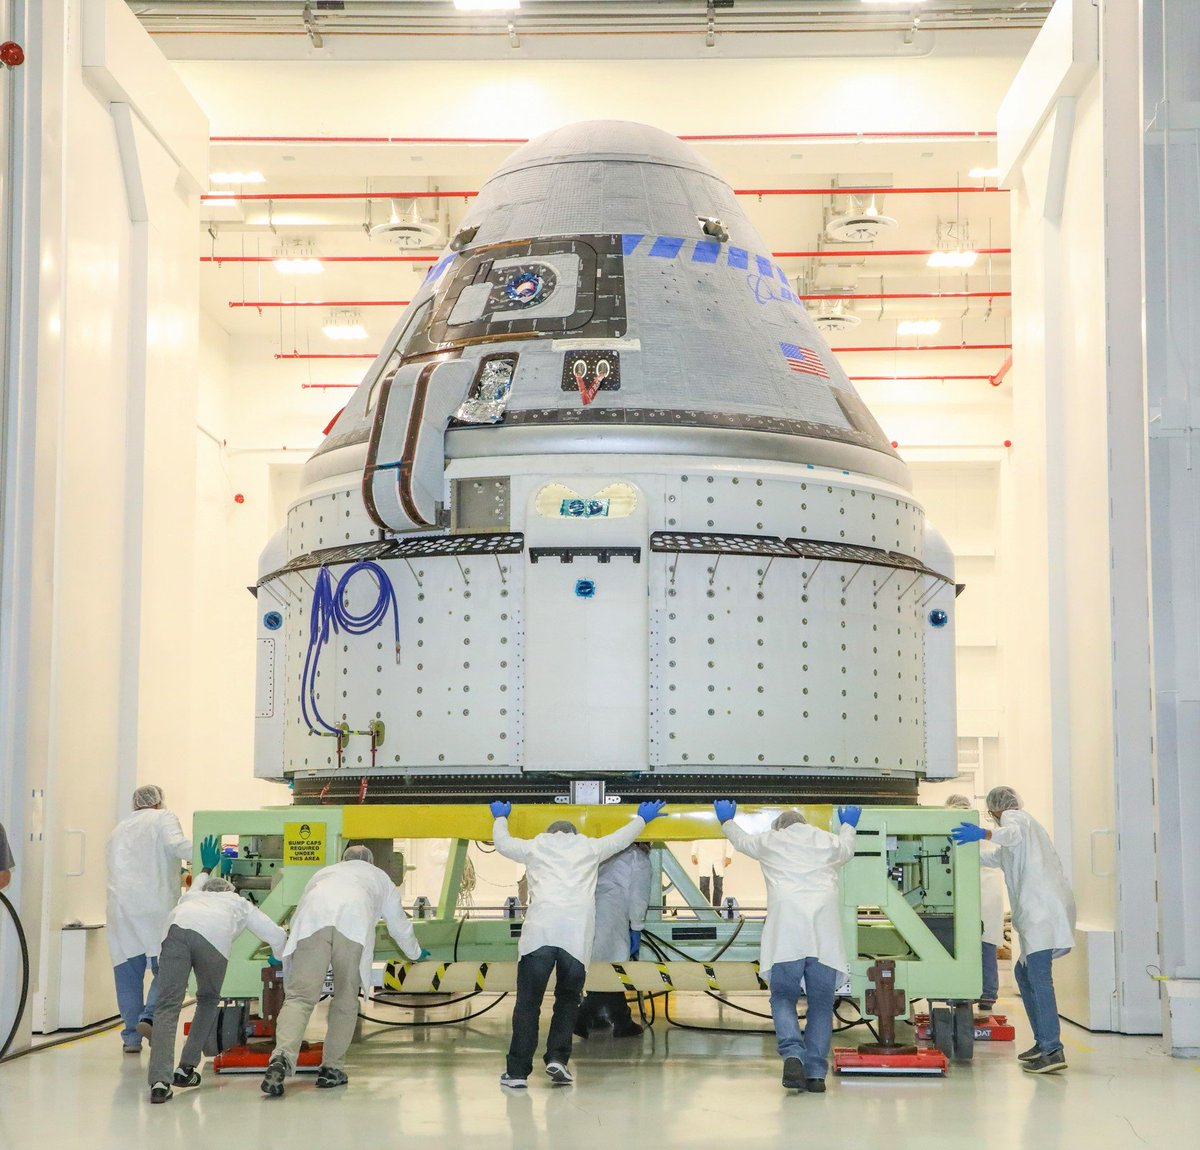 In December Boeing's Starliner could dispatch to the space station